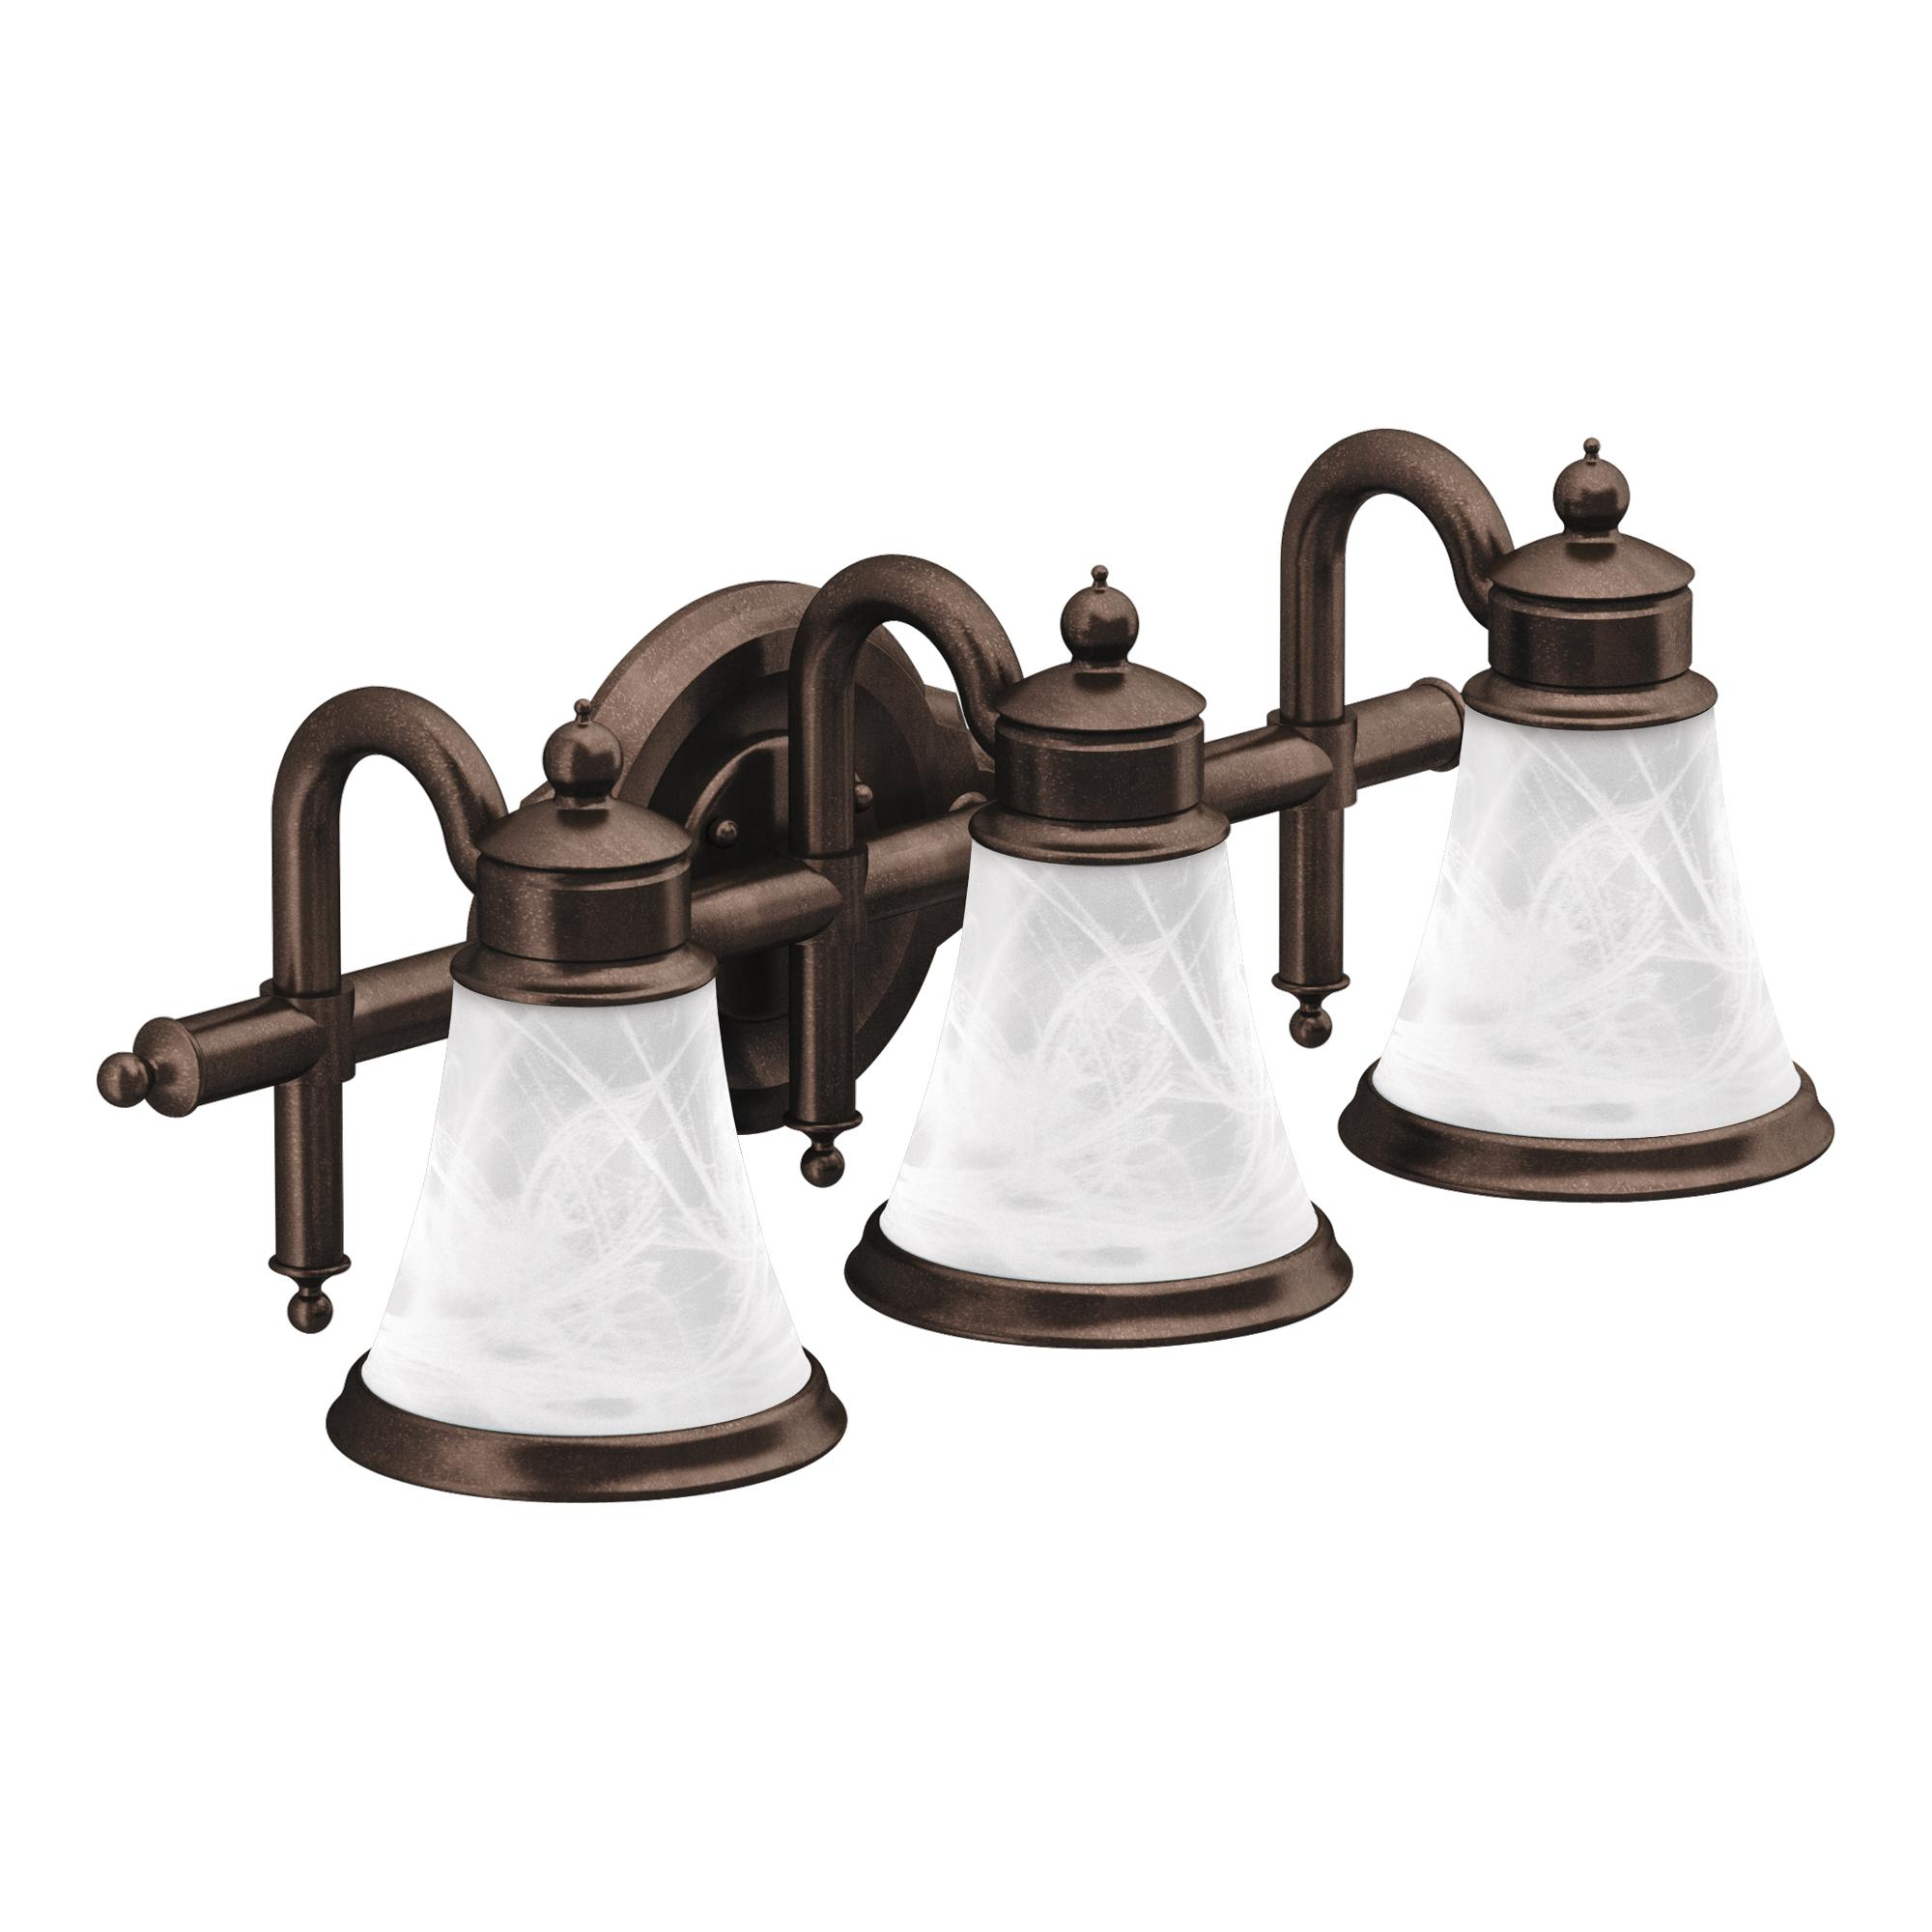 kitchen wayfair accessory independent bath accessories collection bronze bathroom best sets